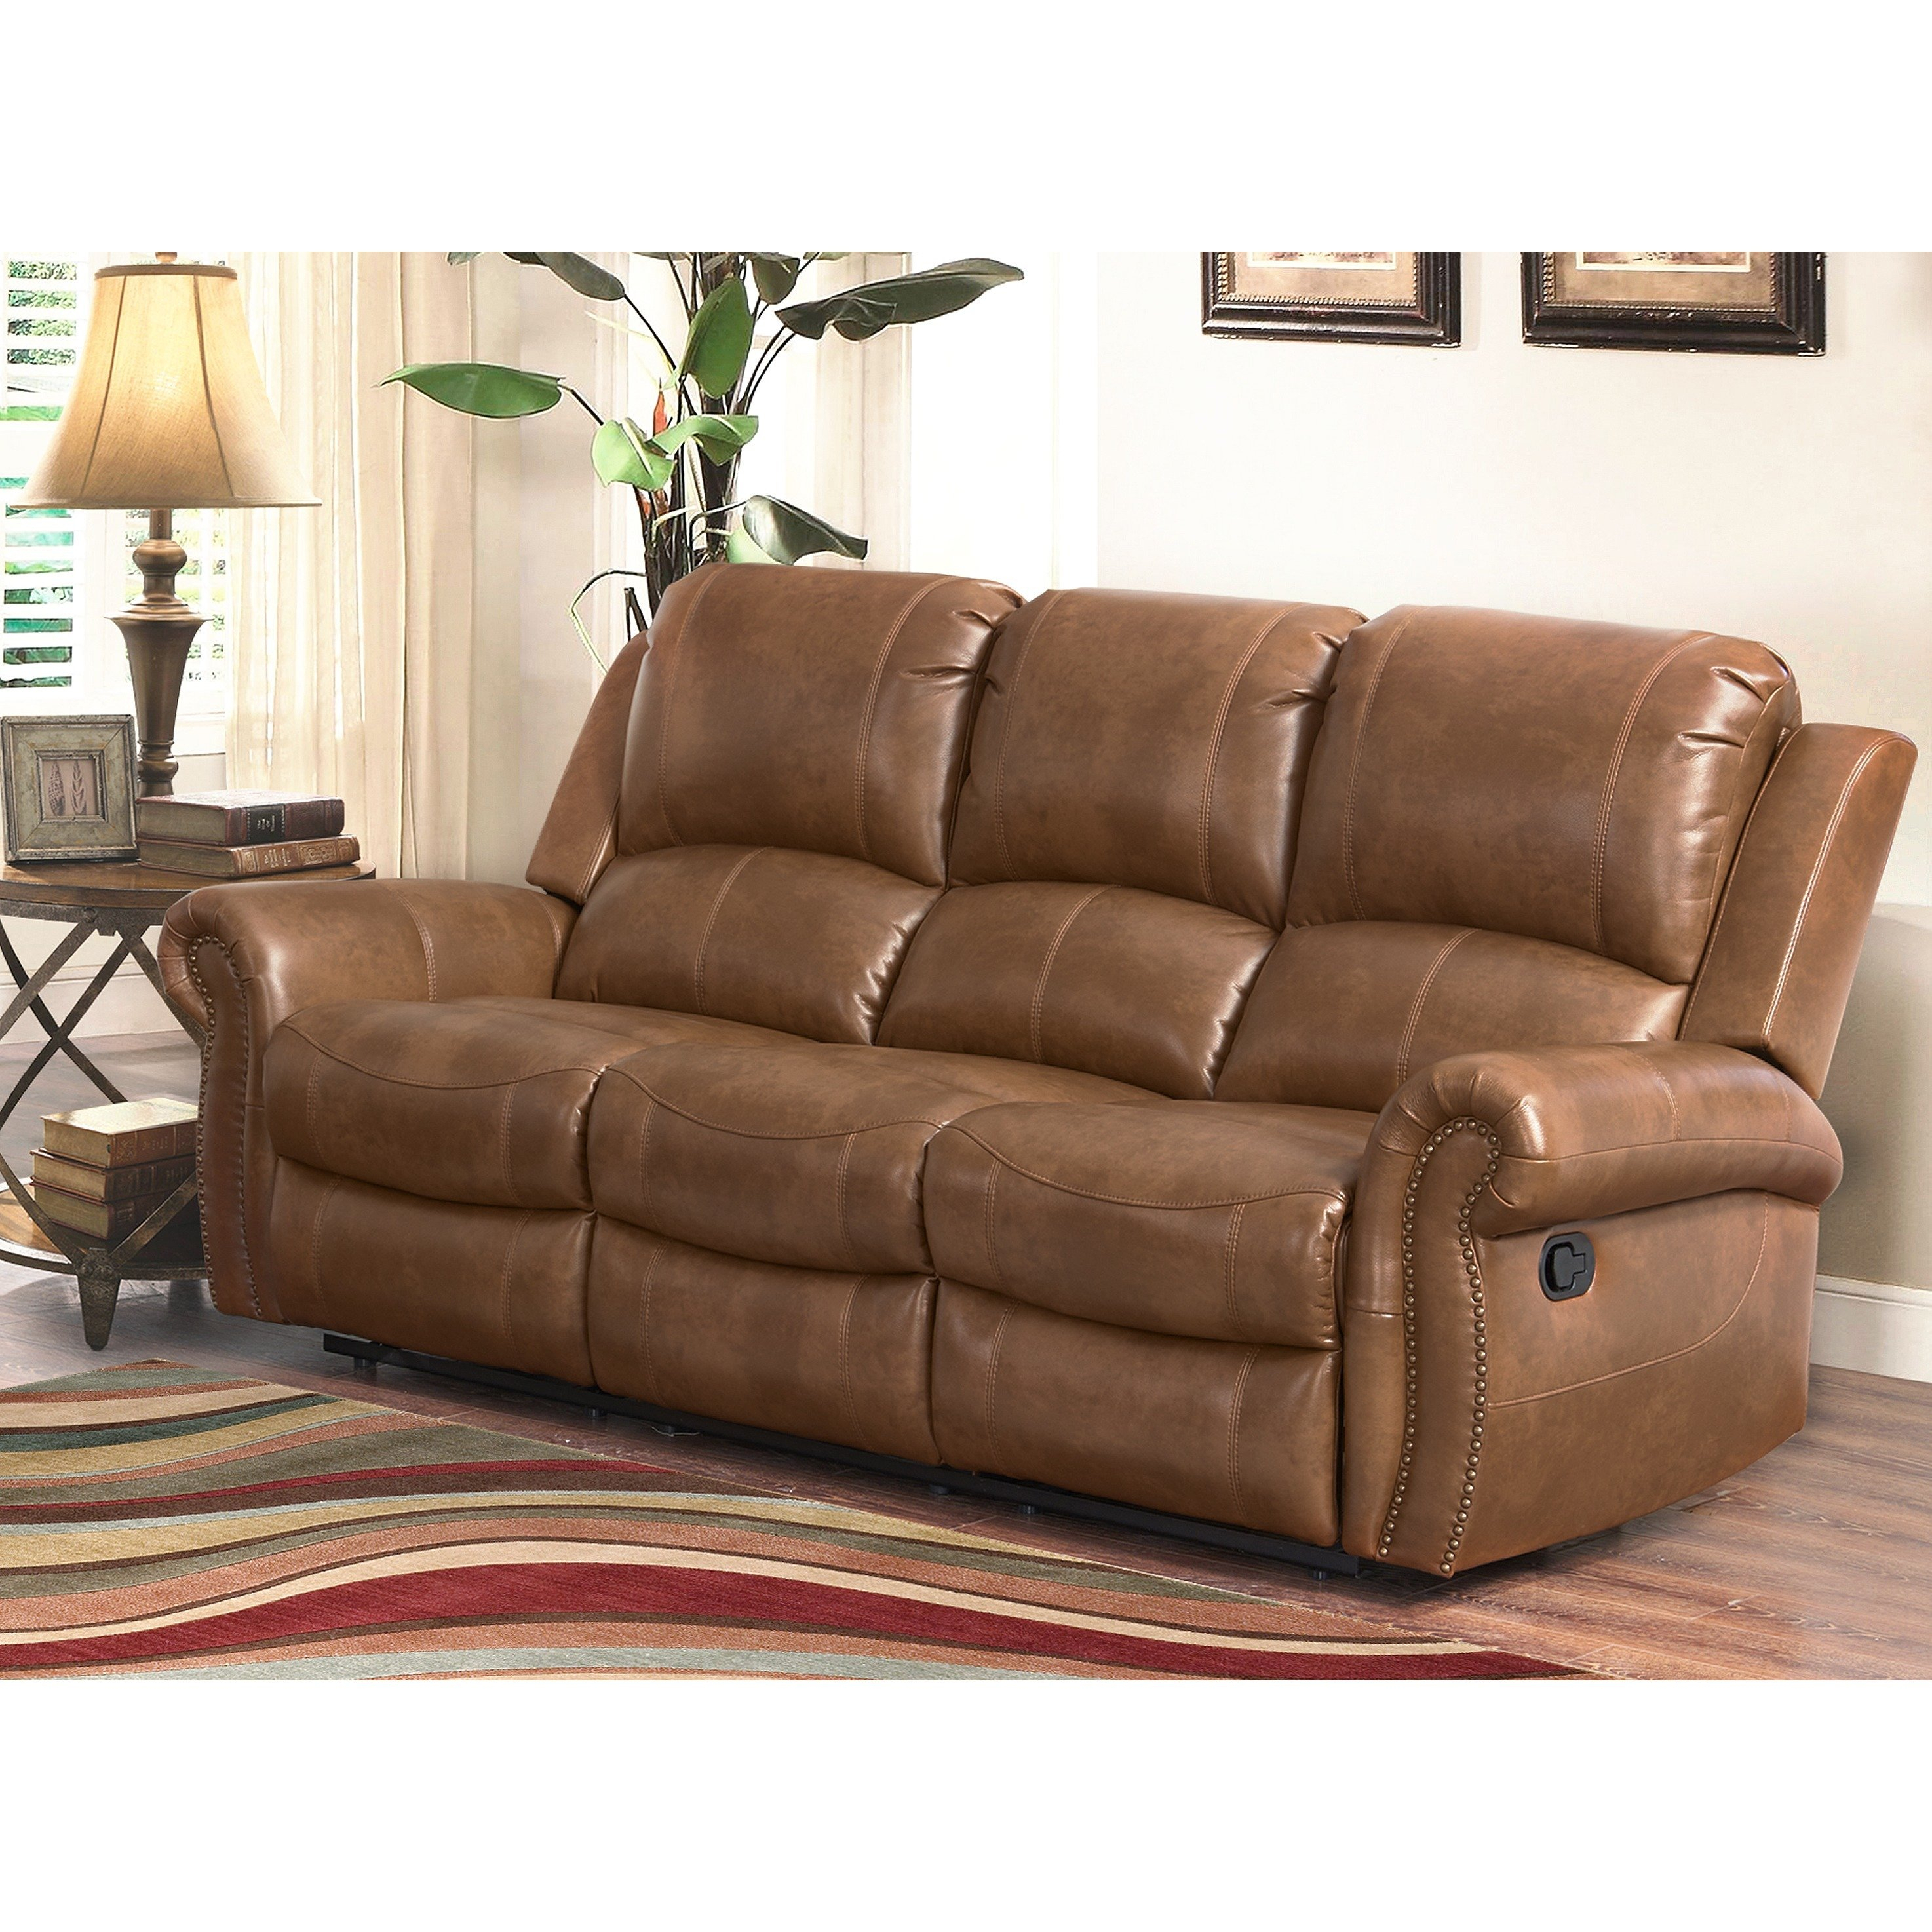 Shop Abbyson Skyler Cognac Leather Reclining Sofa – Free Shipping For Gina Blue Leather Sofa Chairs (Image 19 of 25)